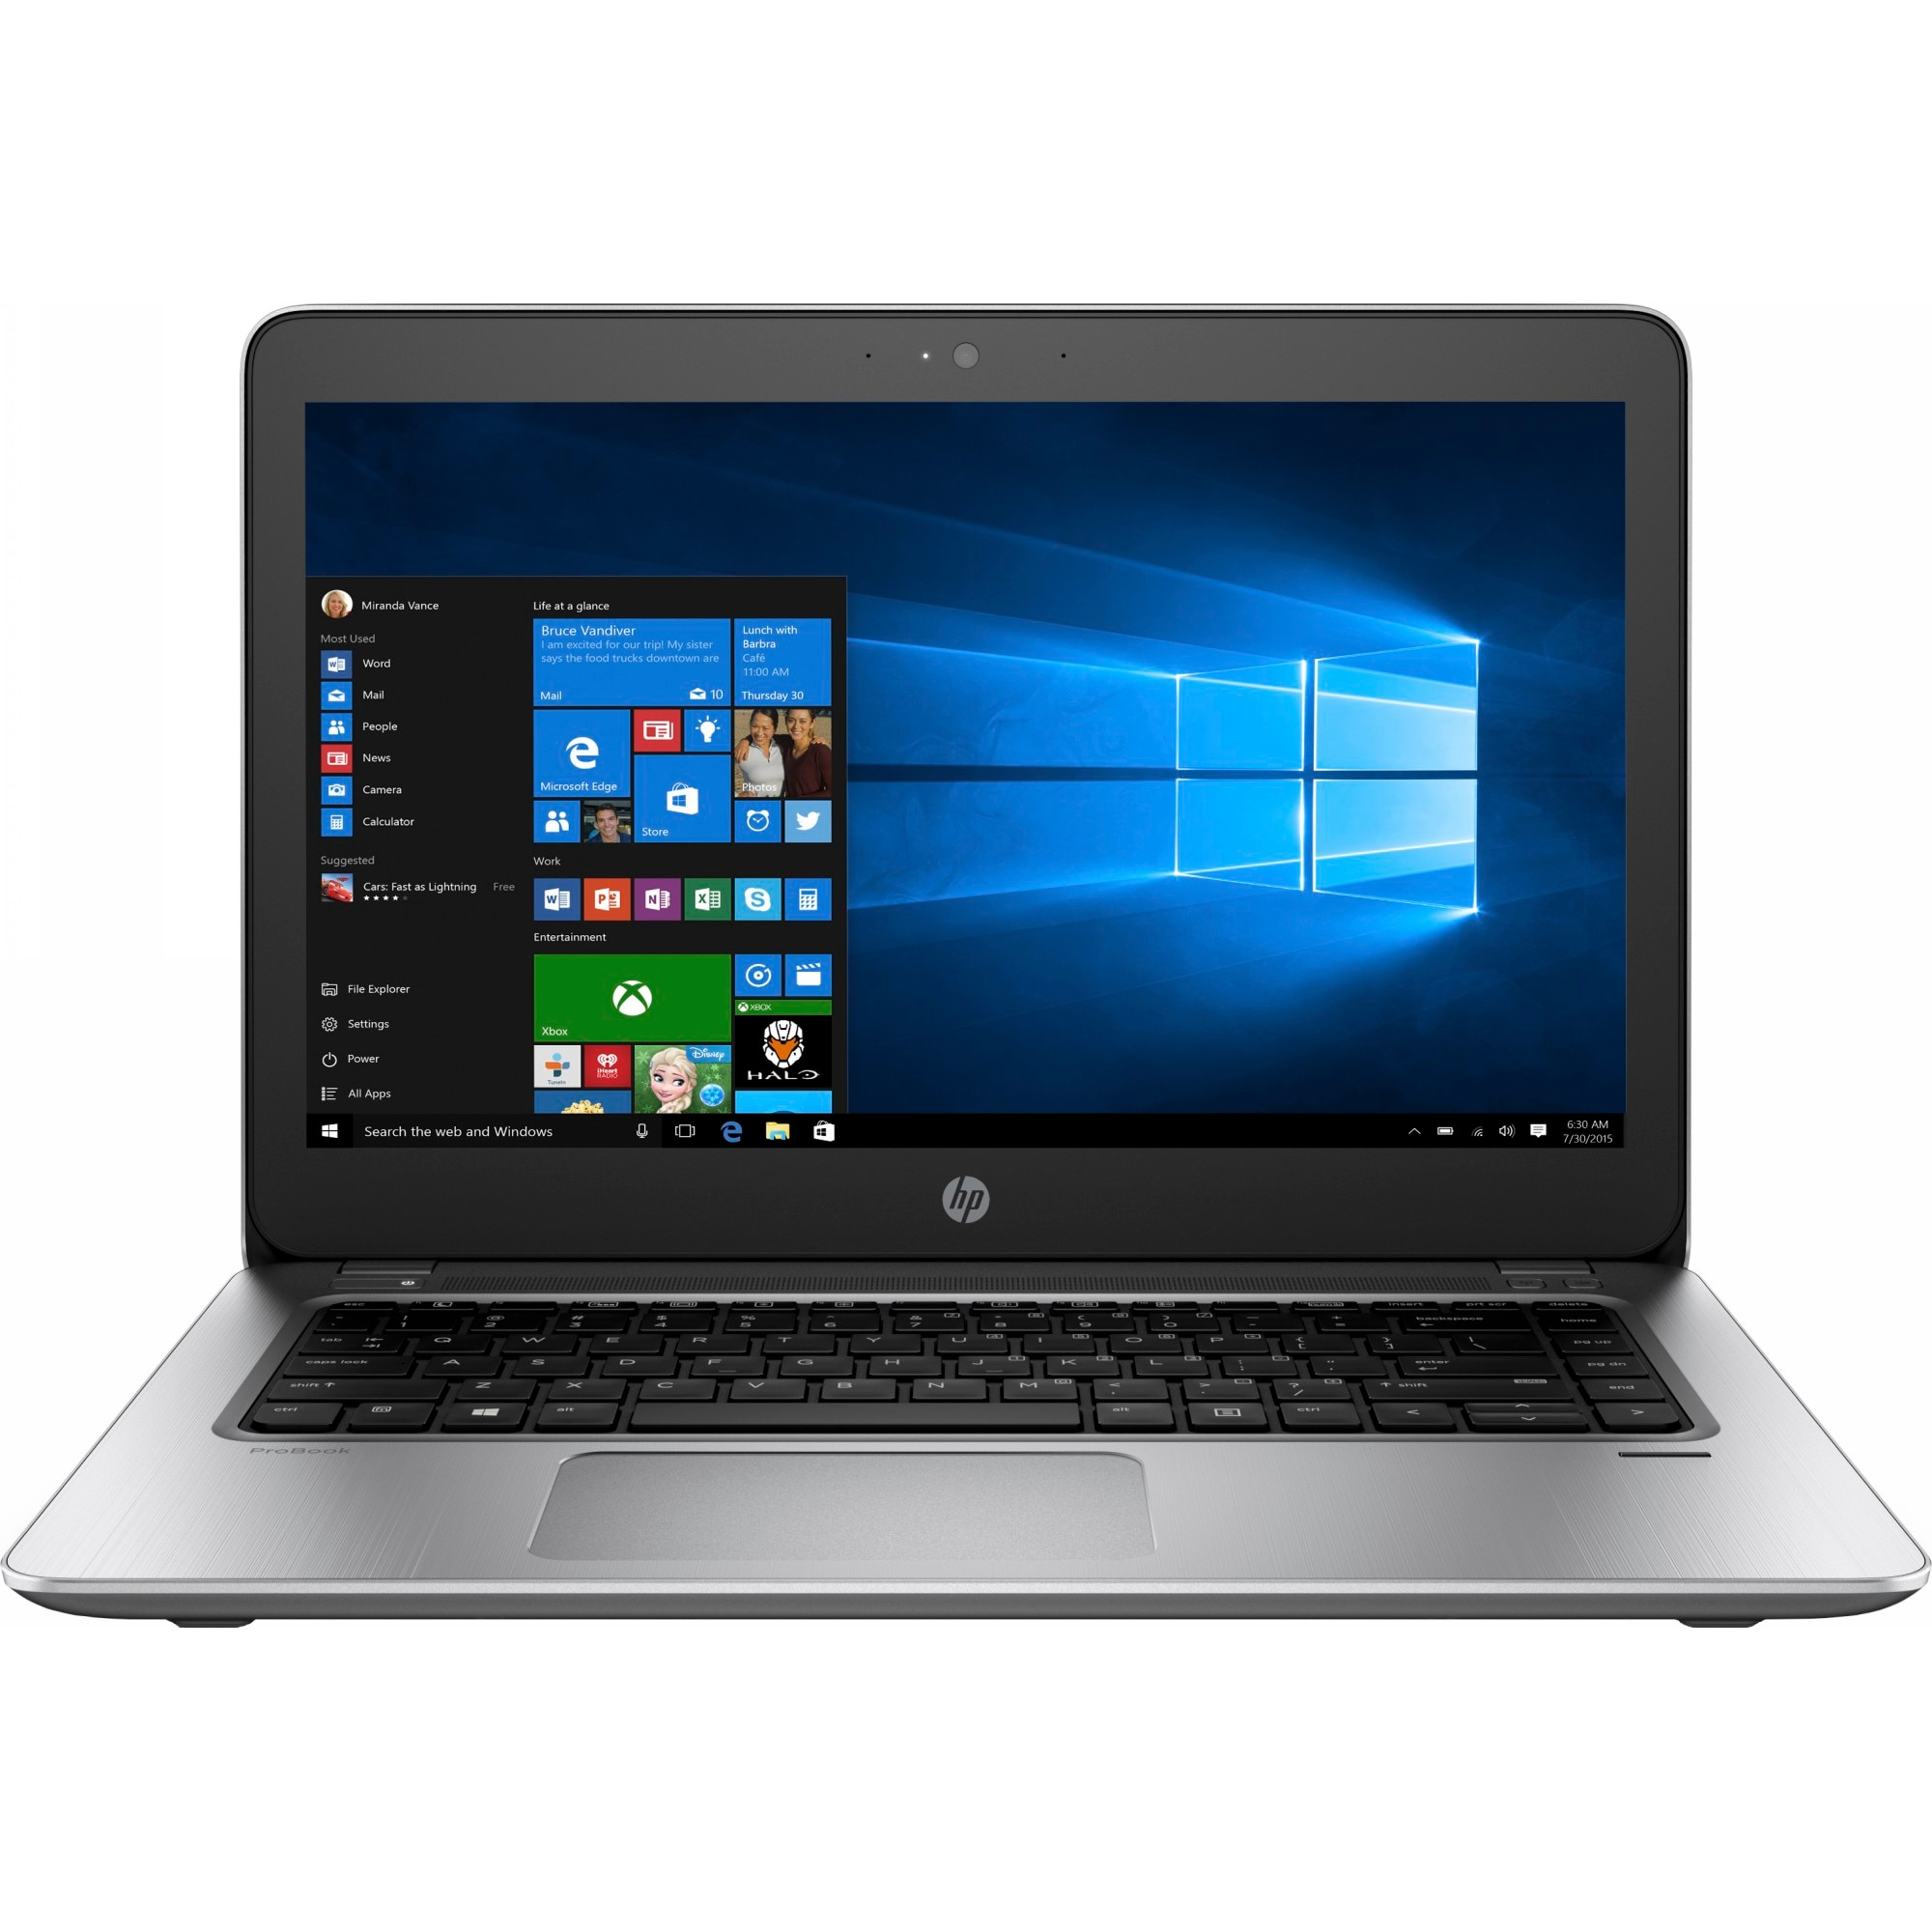 "Fotografie Laptop ultraportabil HP Probook 440 G4 cu procesor Intel® Core™ i5-7200U 2.50 GHz, Kaby Lake, 14"", 4GB, 500GB, Intel® HD Graphics 620, FPR, Microsoft Windows 10, Silver"